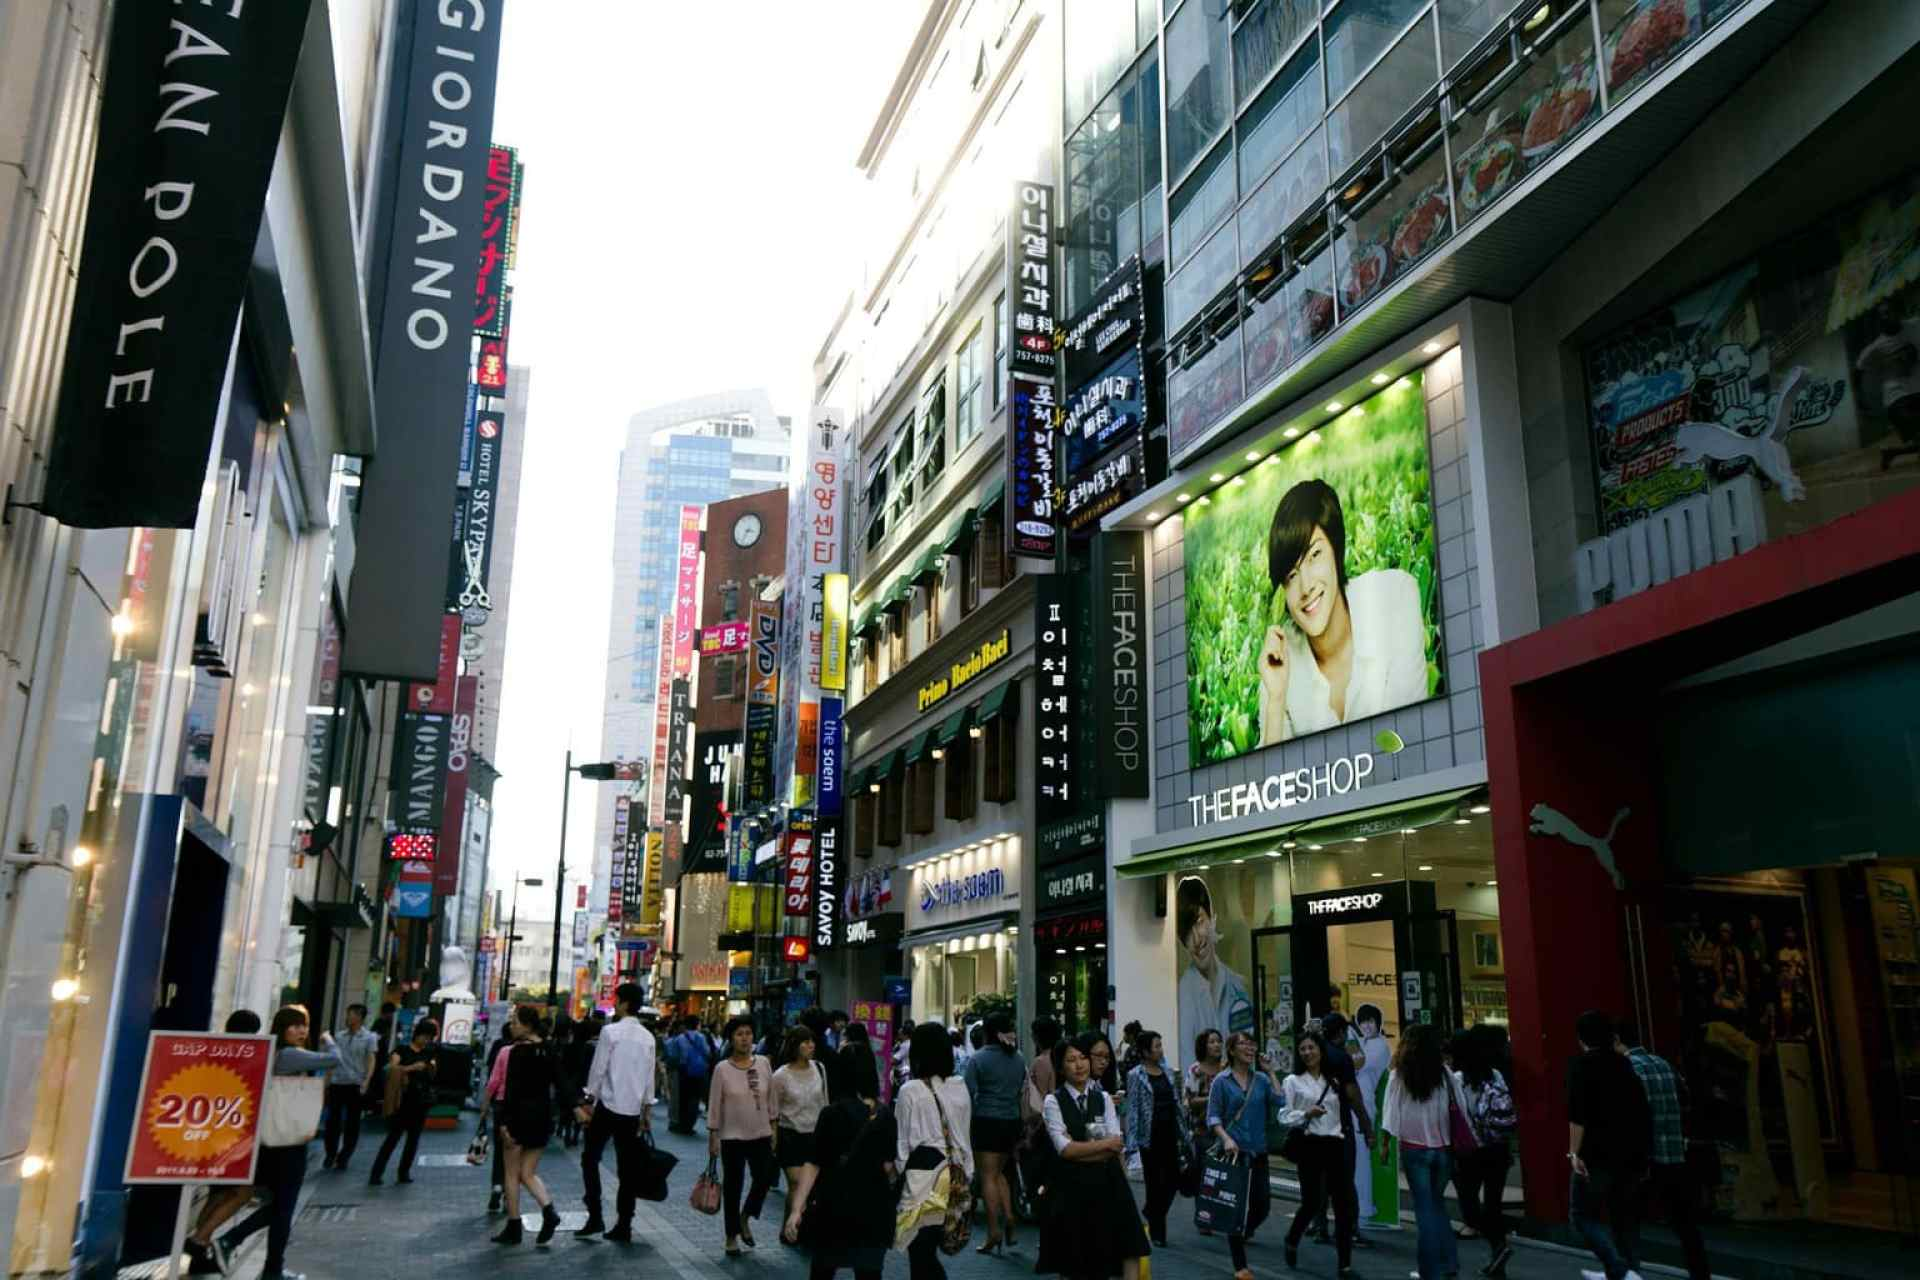 Myeongdong is another shopping mecca